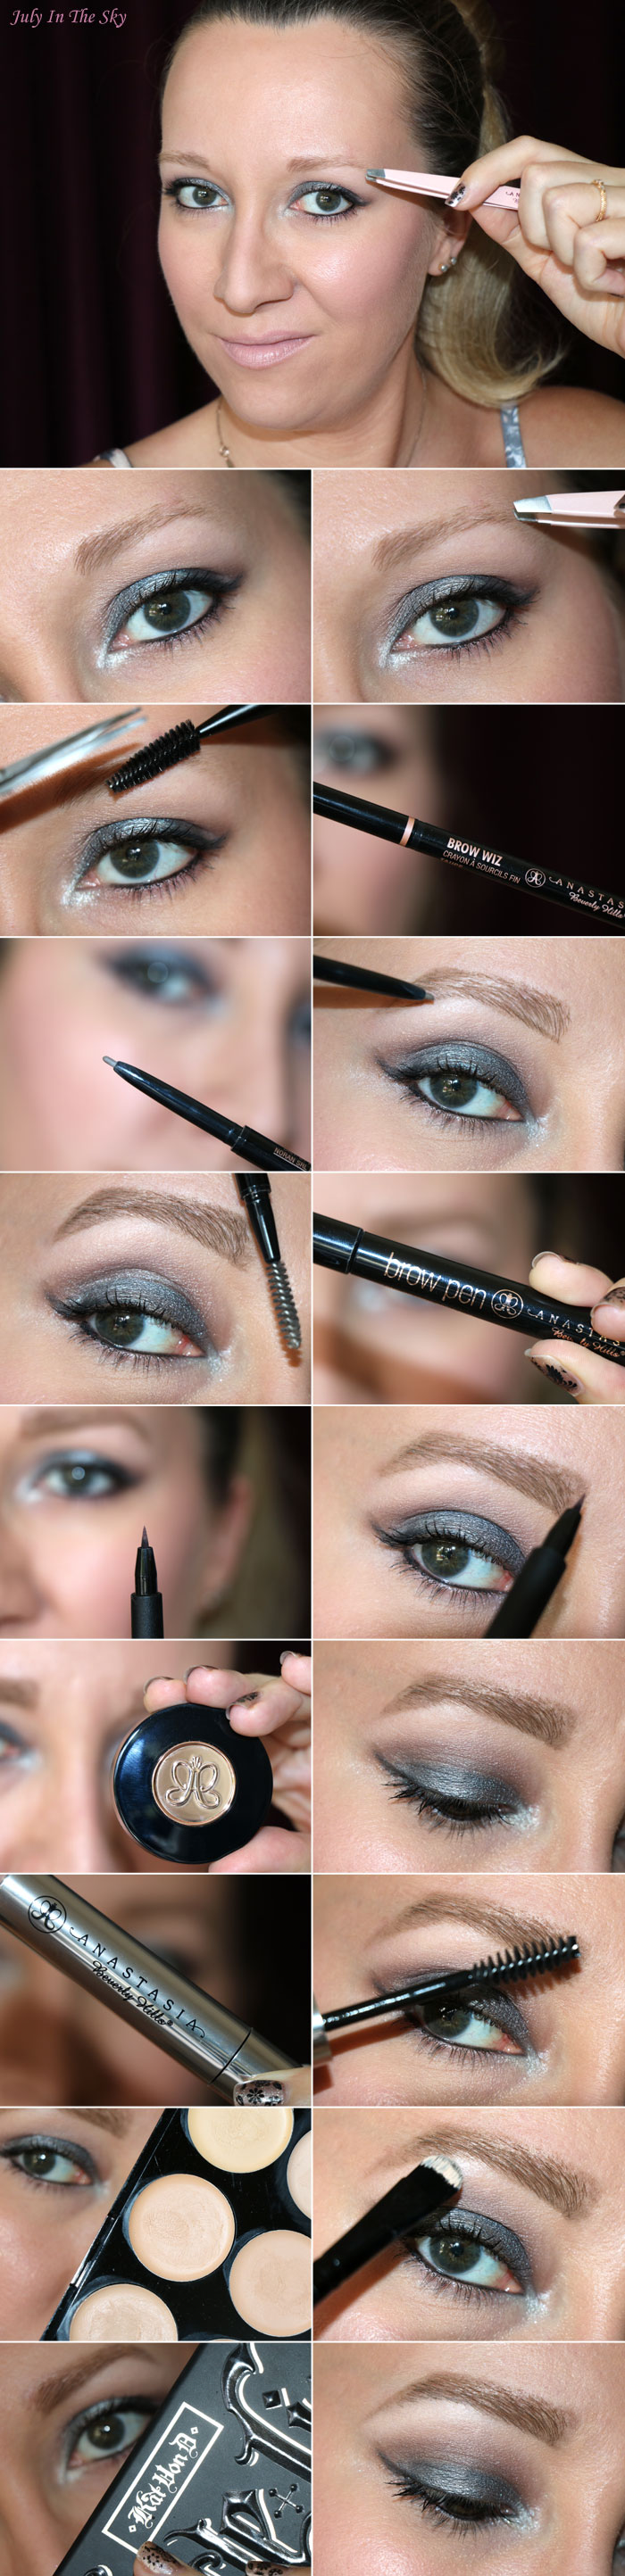 blog beauté routine sourcils blonds anastasia beverly hills